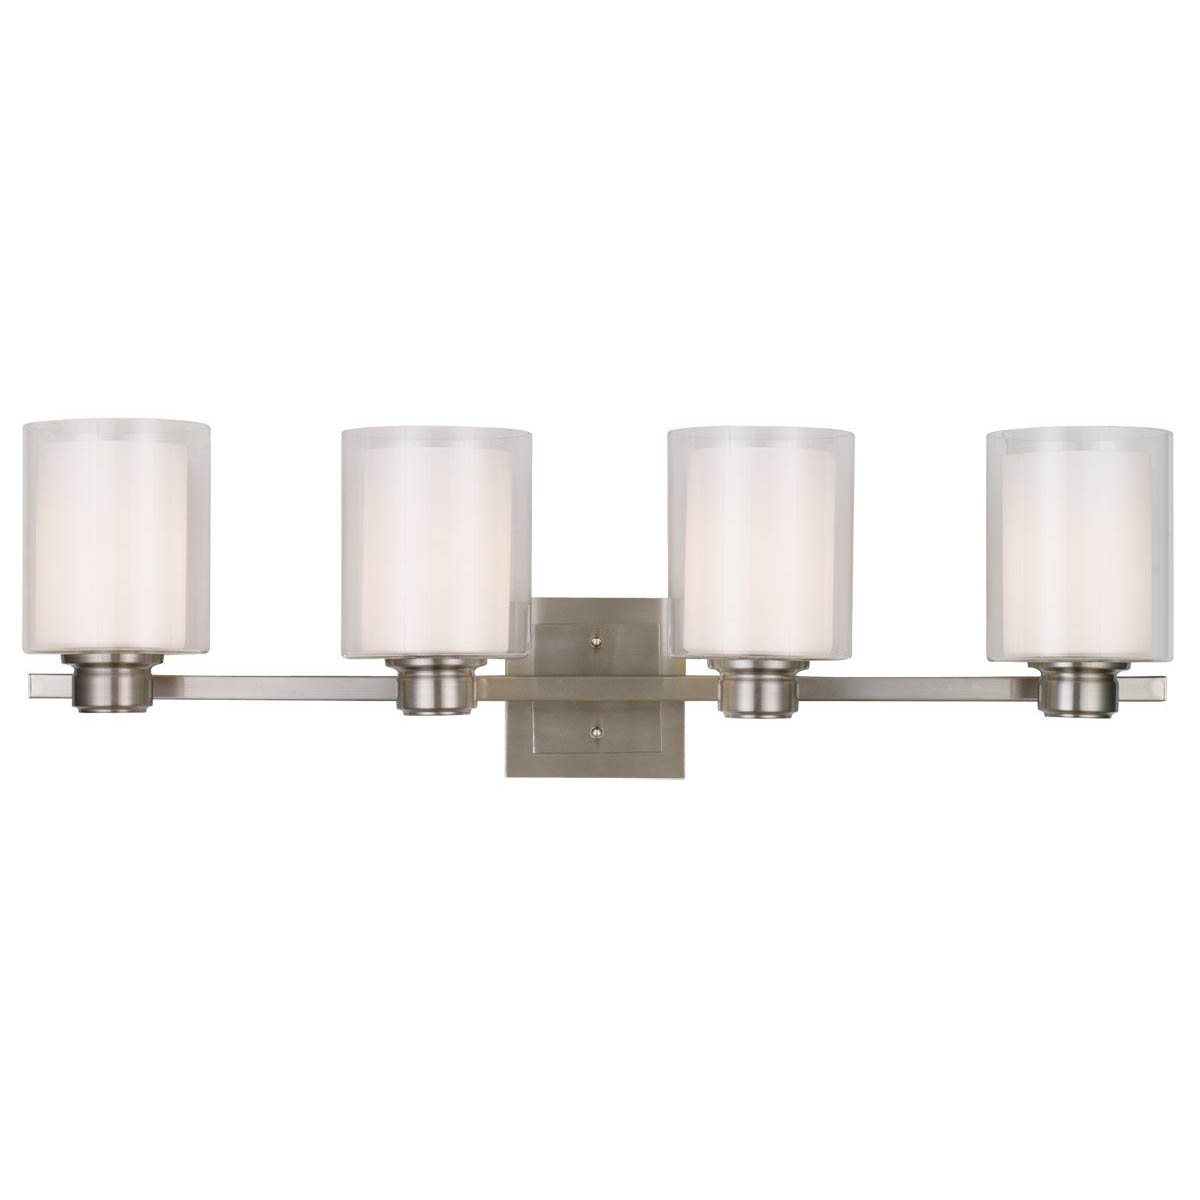 Design House Oslo 4 Light Indoor Wall Mount in Satin Nickel - 556167